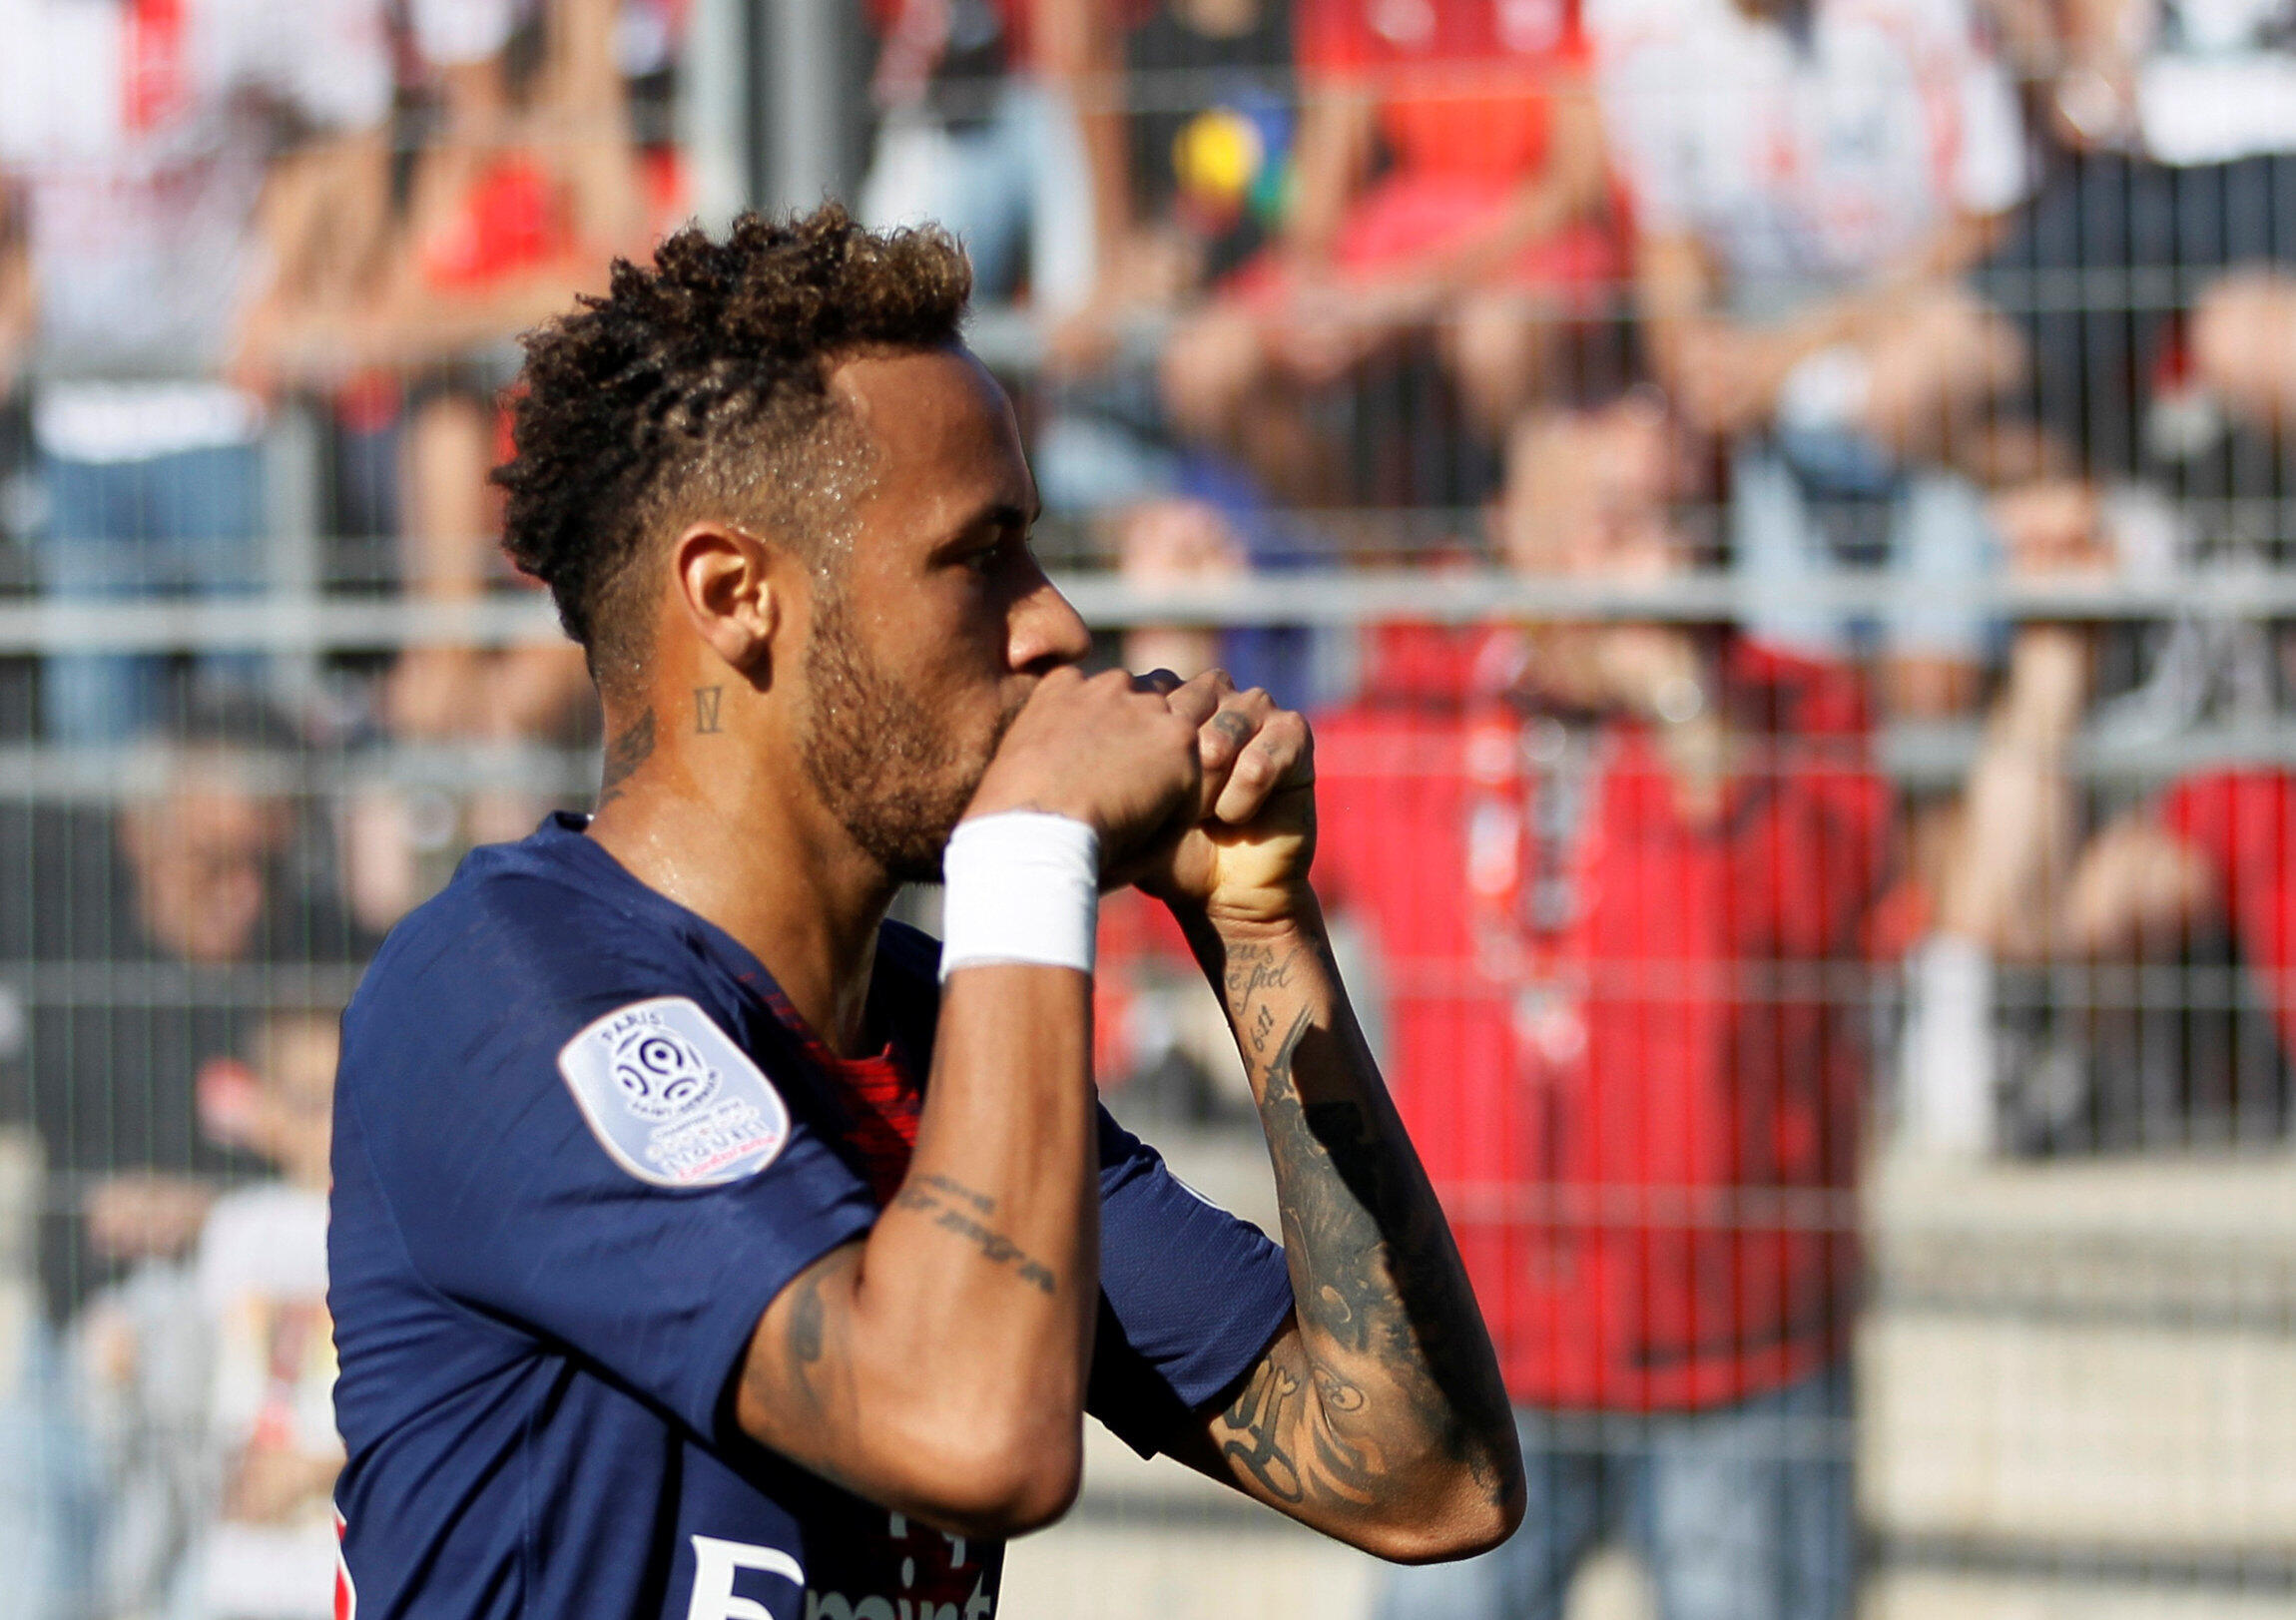 Neymar's brace against Nice took his tally up to seven goals this season.